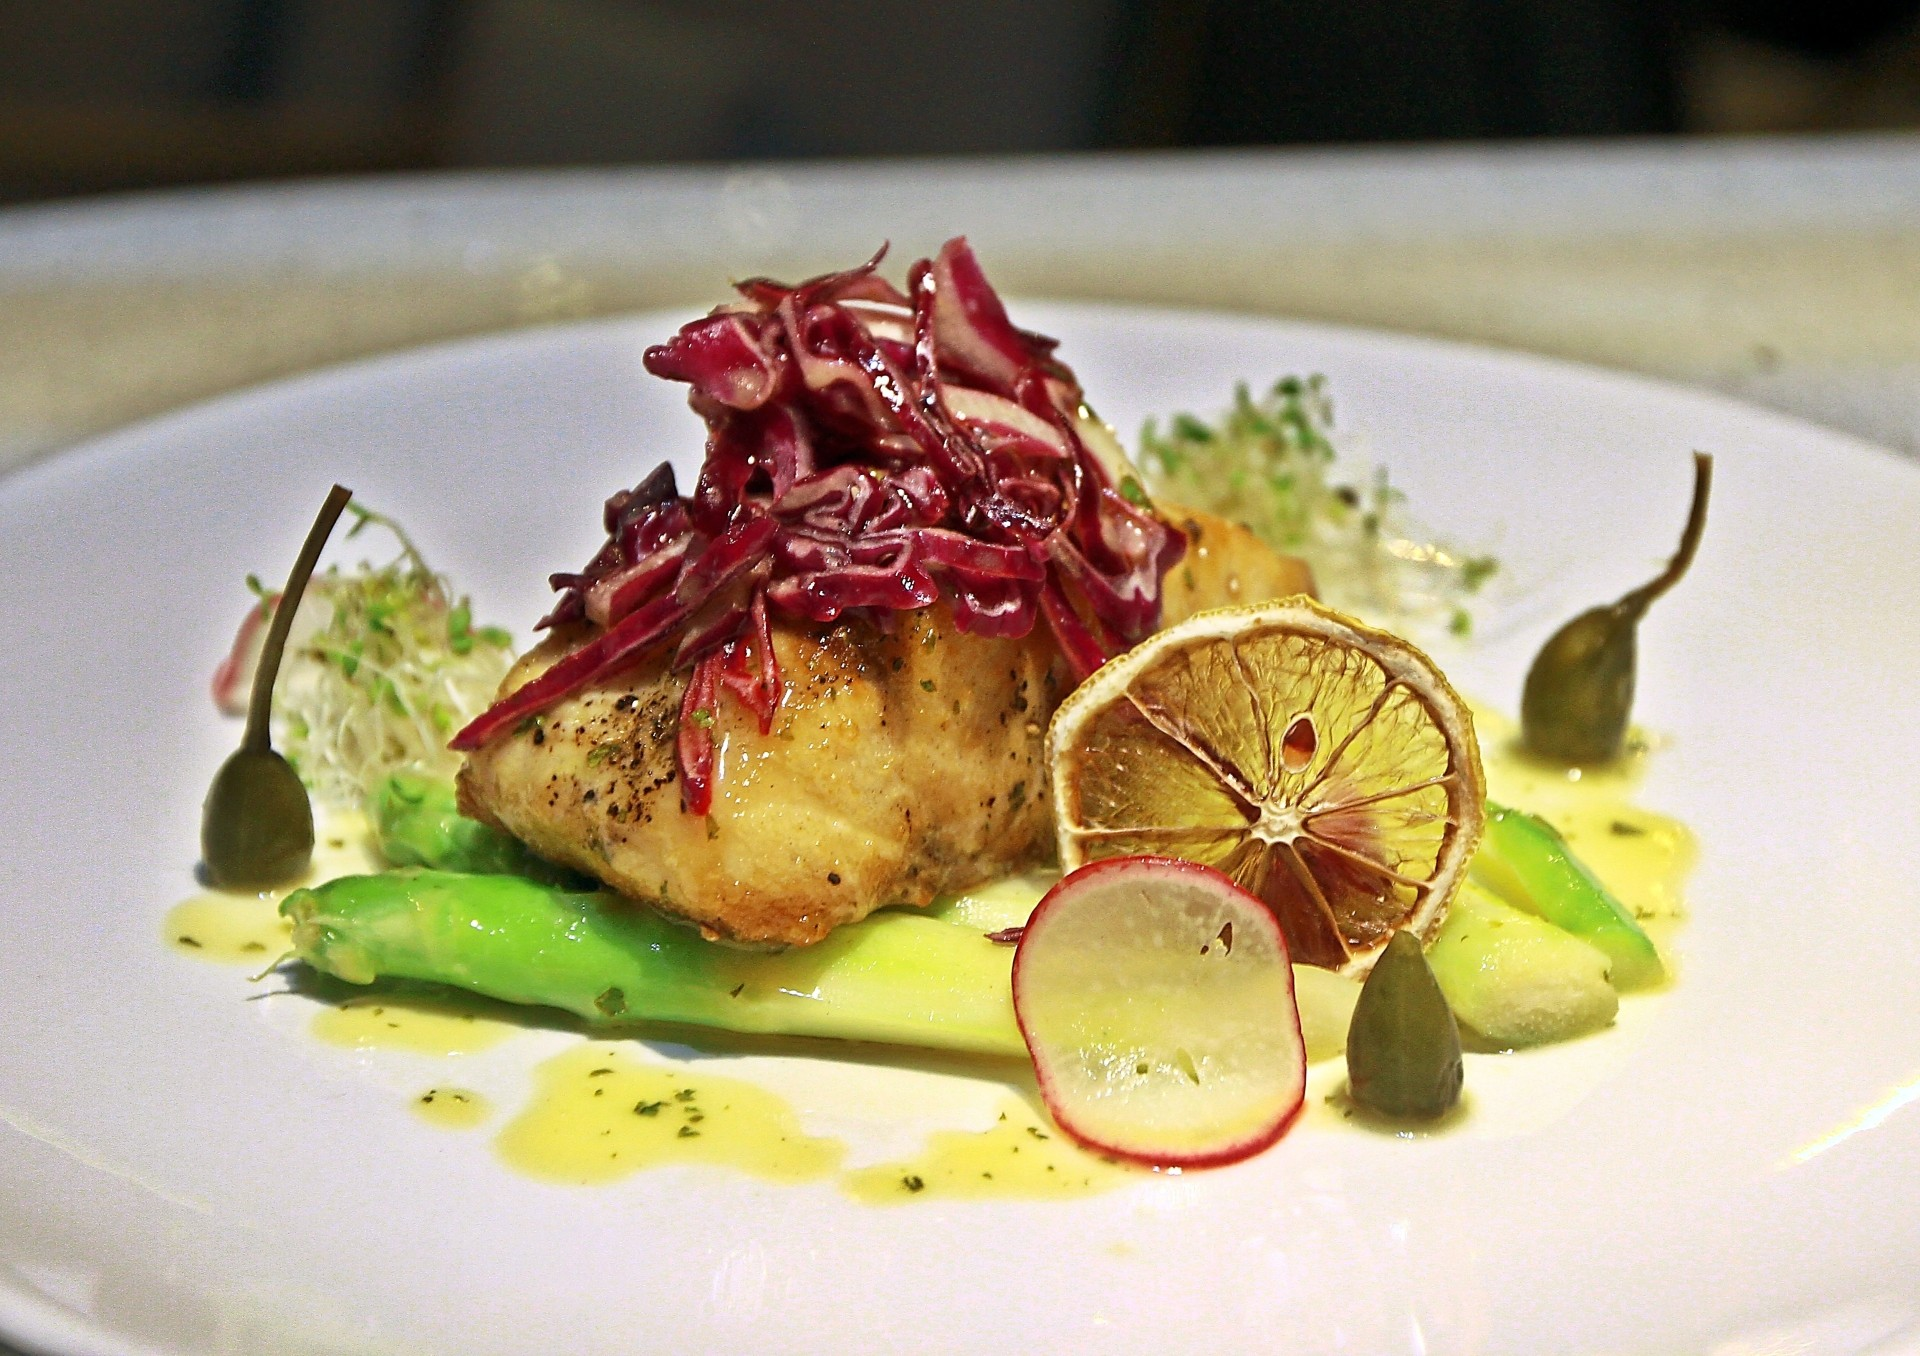 Roasted Barramundi fillet served with green asparagus, red cabbage slaw, capers and lemon sauce.